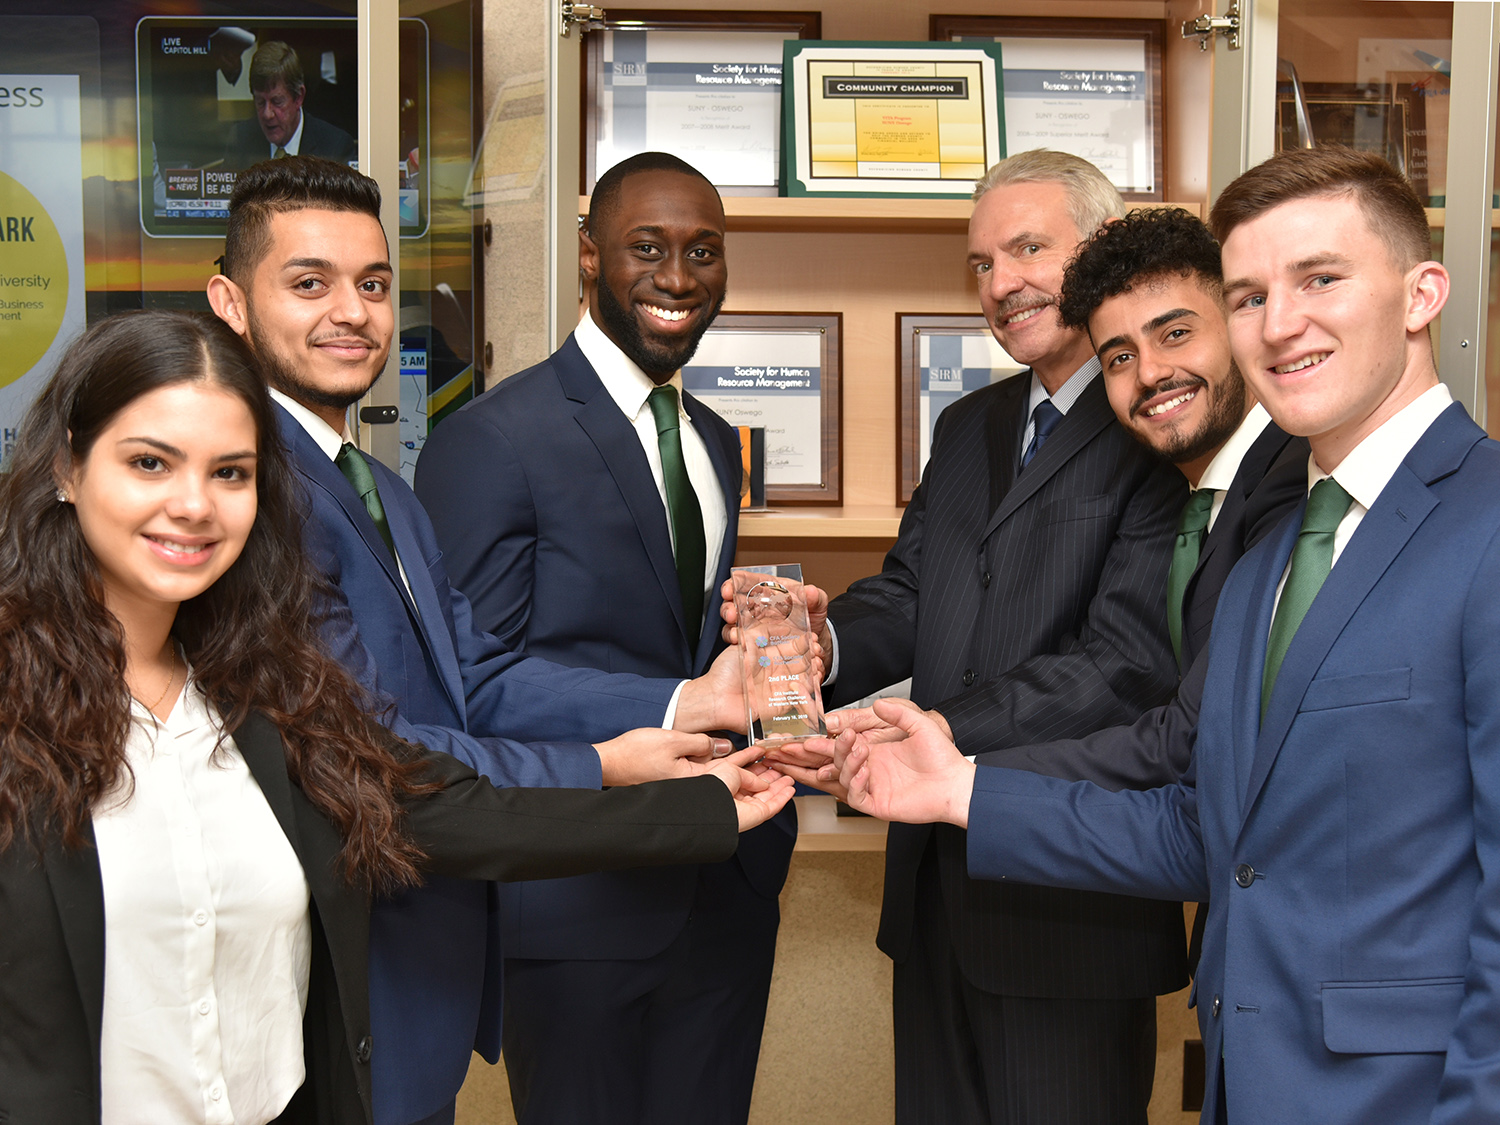 Students who placed in CFA challenge present Dean of Business Richard Skolnik with trophy